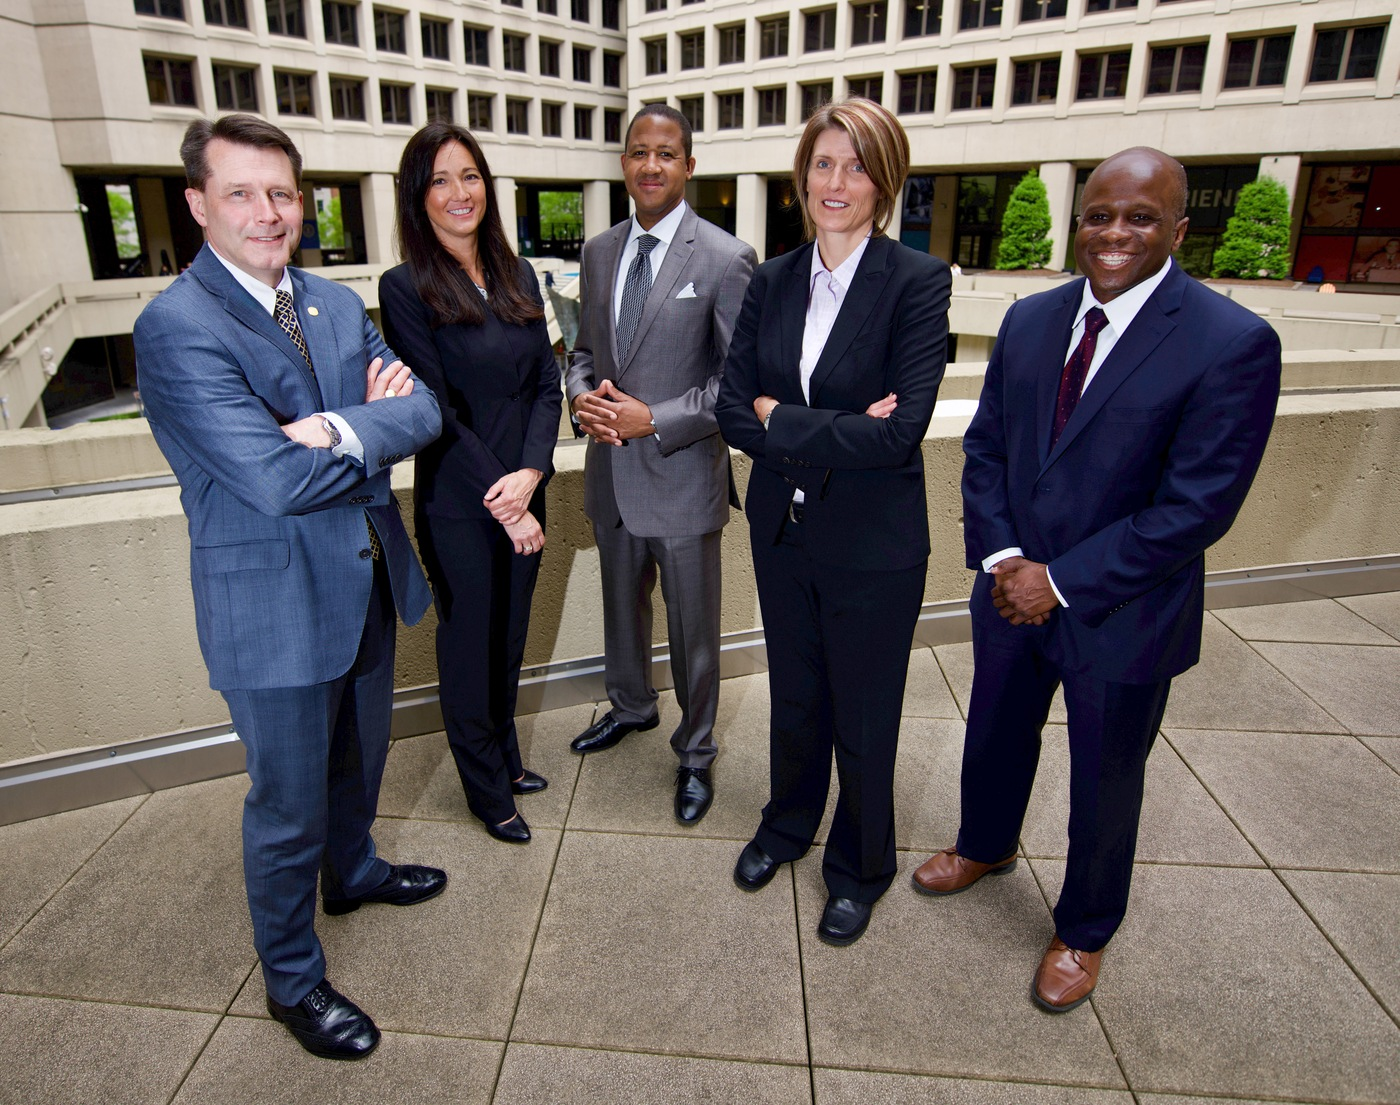 """FBI executive assistant directors (from left) Darrin E. Jones, IT Infrastructure Division; Larissa L. Knapp, Human Resources Branch; M.A. """"Mo"""" Myers, Intelligence Branch; Jill Sanborn, National Security Branch; and Brian Turner, Criminal, Cyber, Response, and Services Branch."""